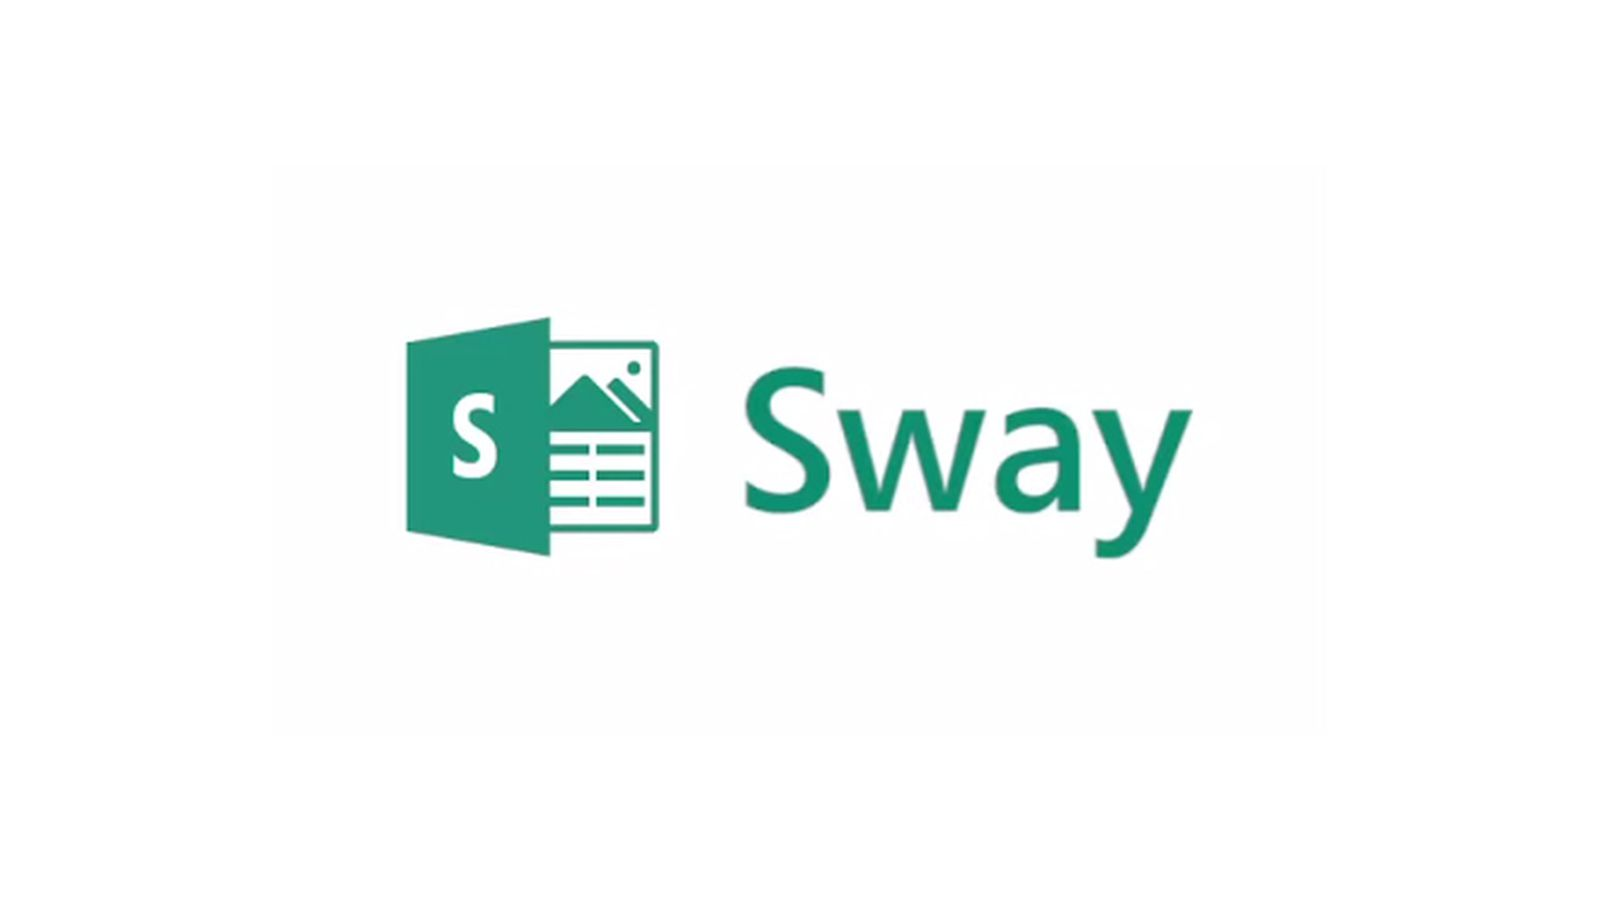 Microsoft's new Sway app is a tool to build elegant ...